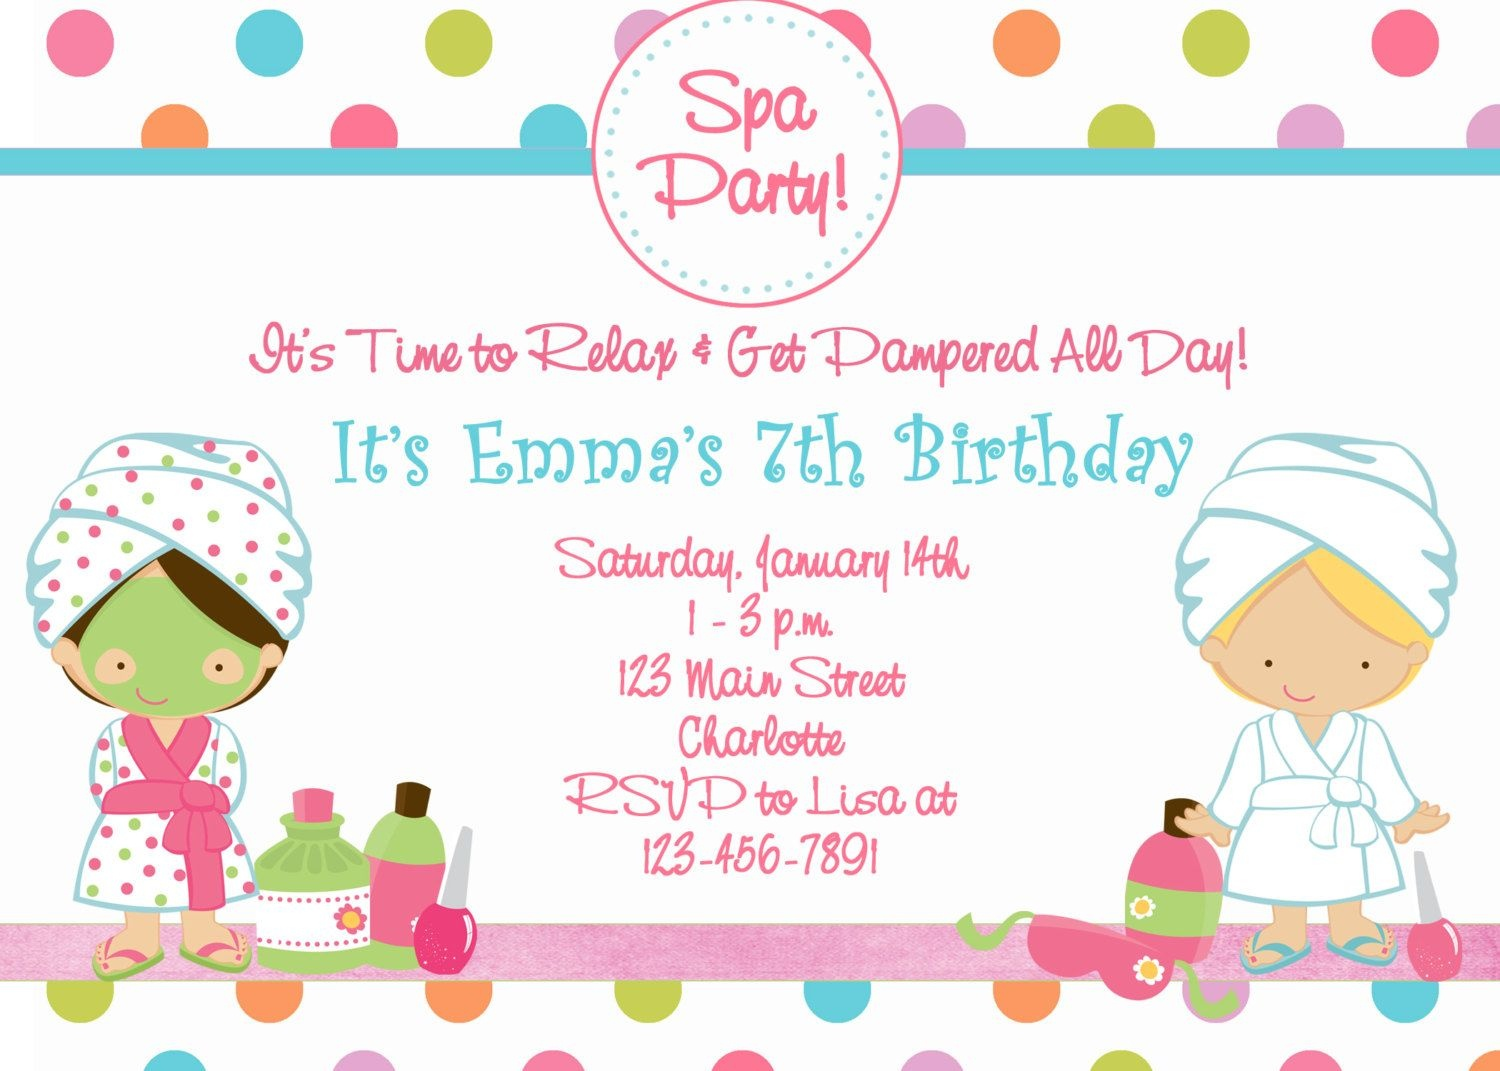 Free Printable Spa Birthday Party Invitations | Spa At Home | Spa - Free Printable Spa Party Invitations Templates